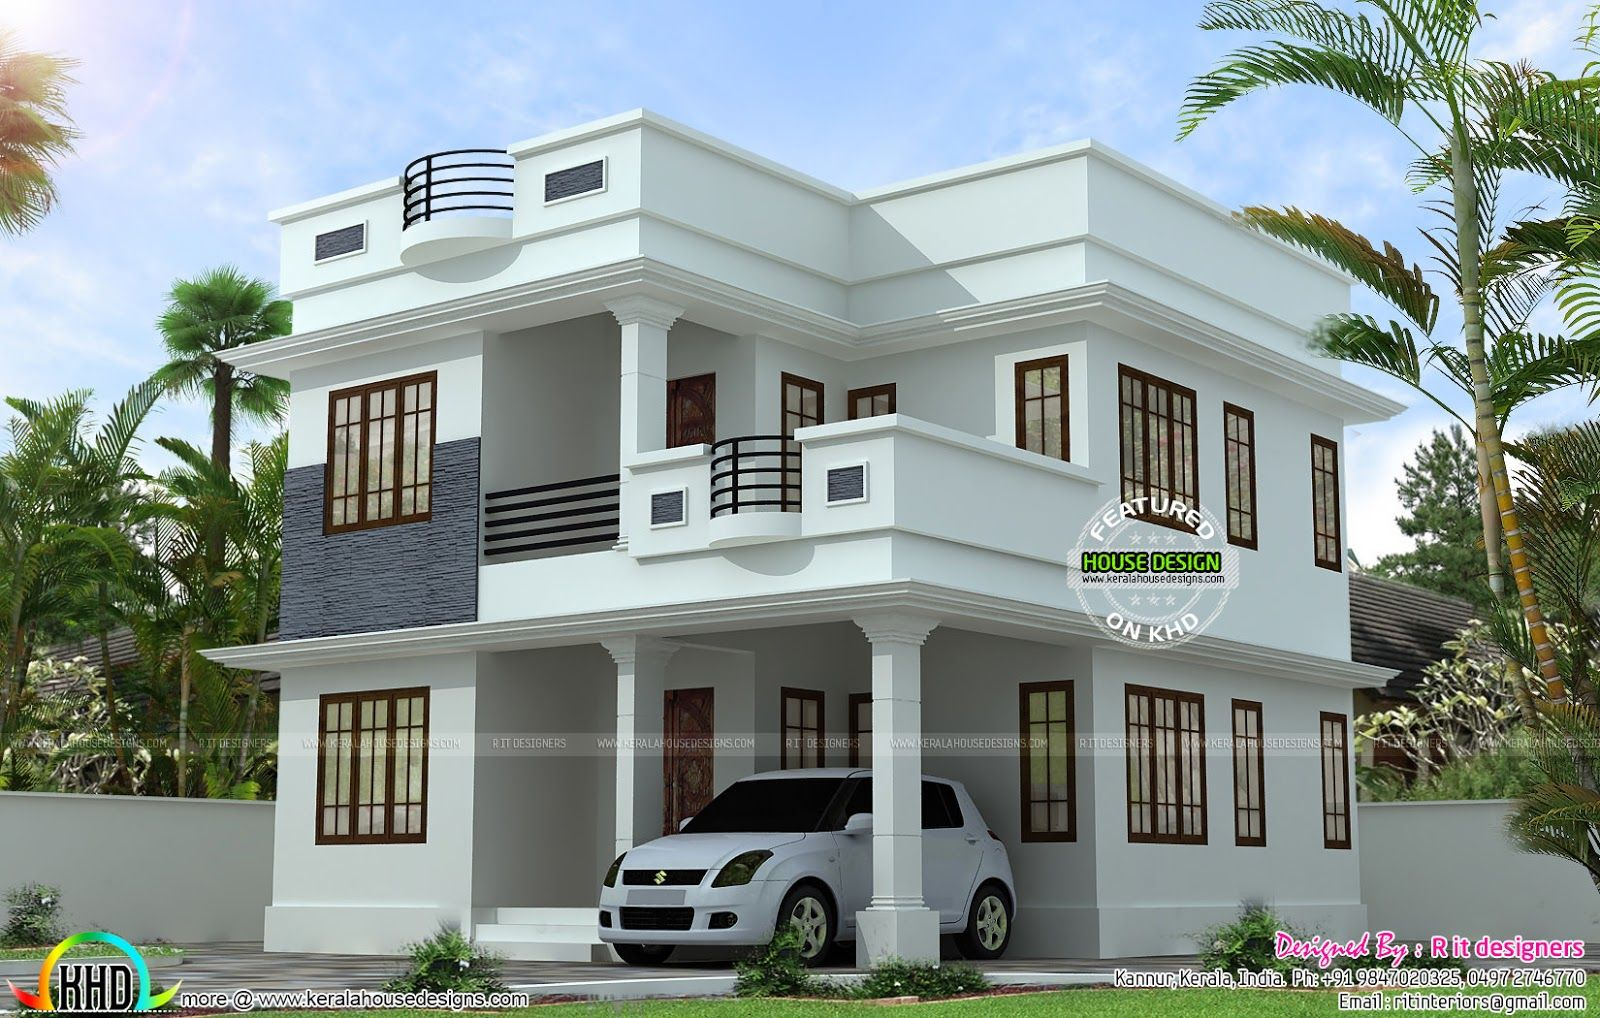 neat and simple small house plan kerala home design and floor plans - Small Houses Design